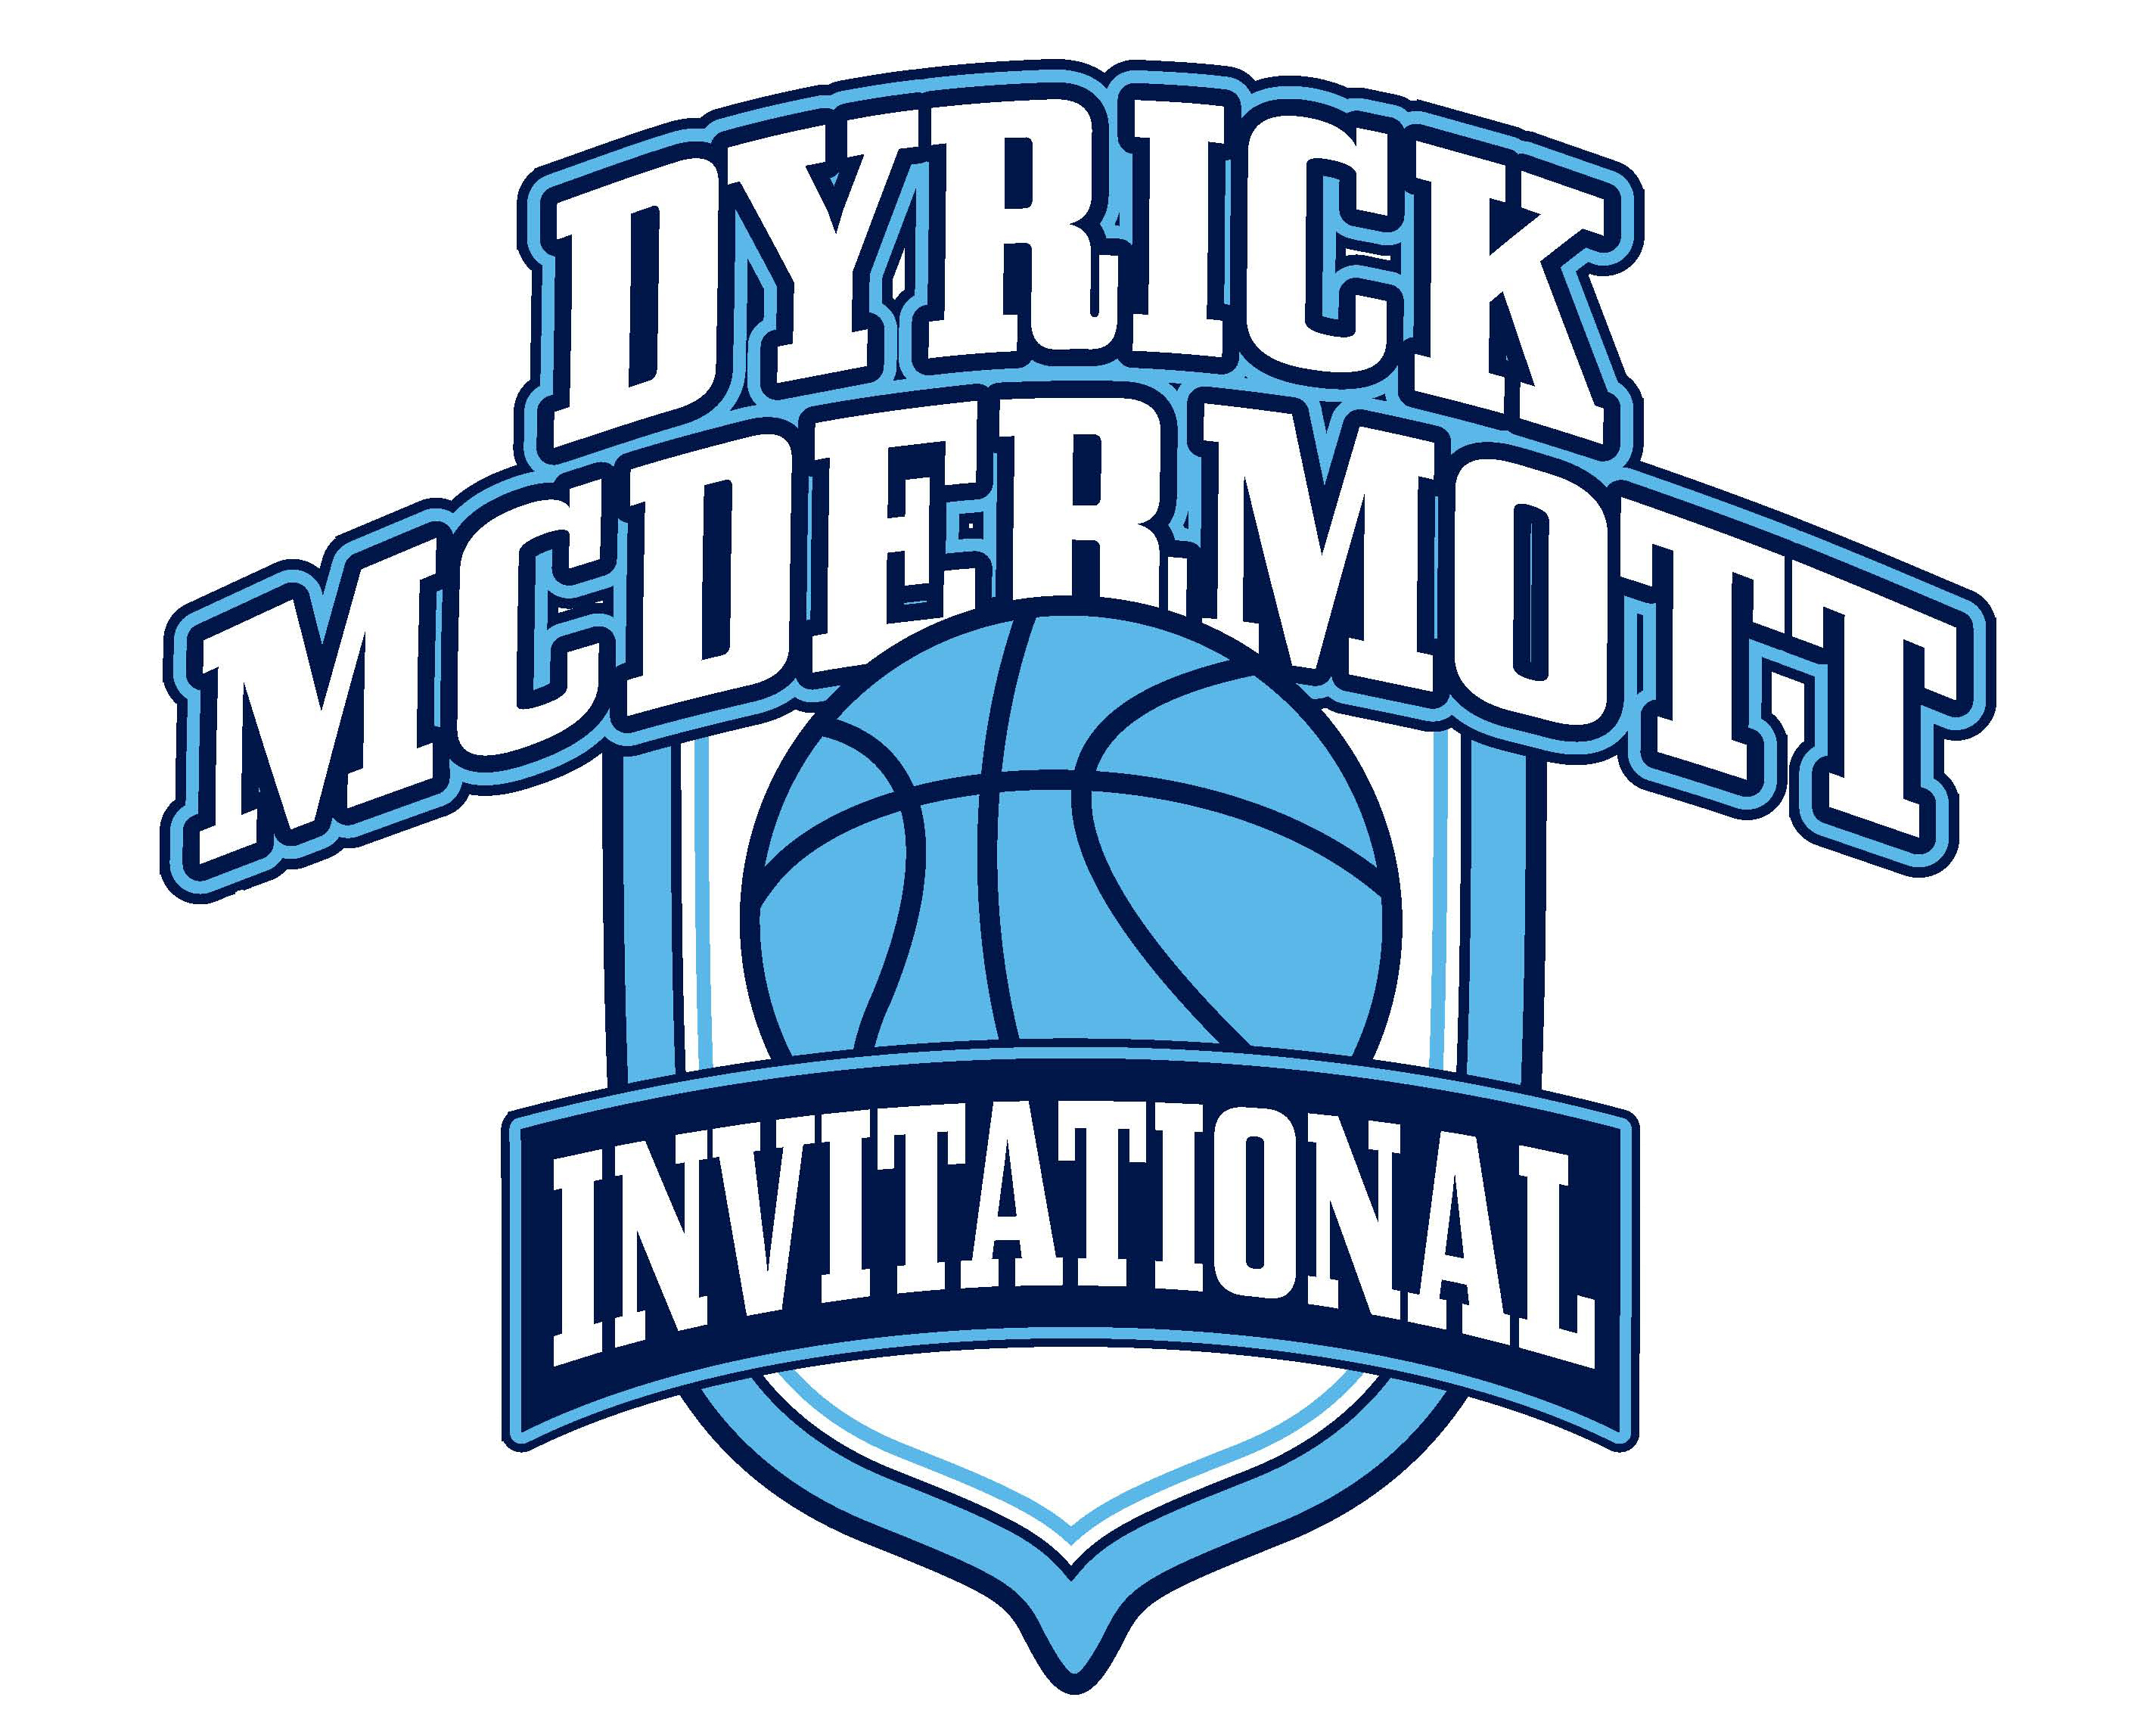 DyrickMcDermottInvitational